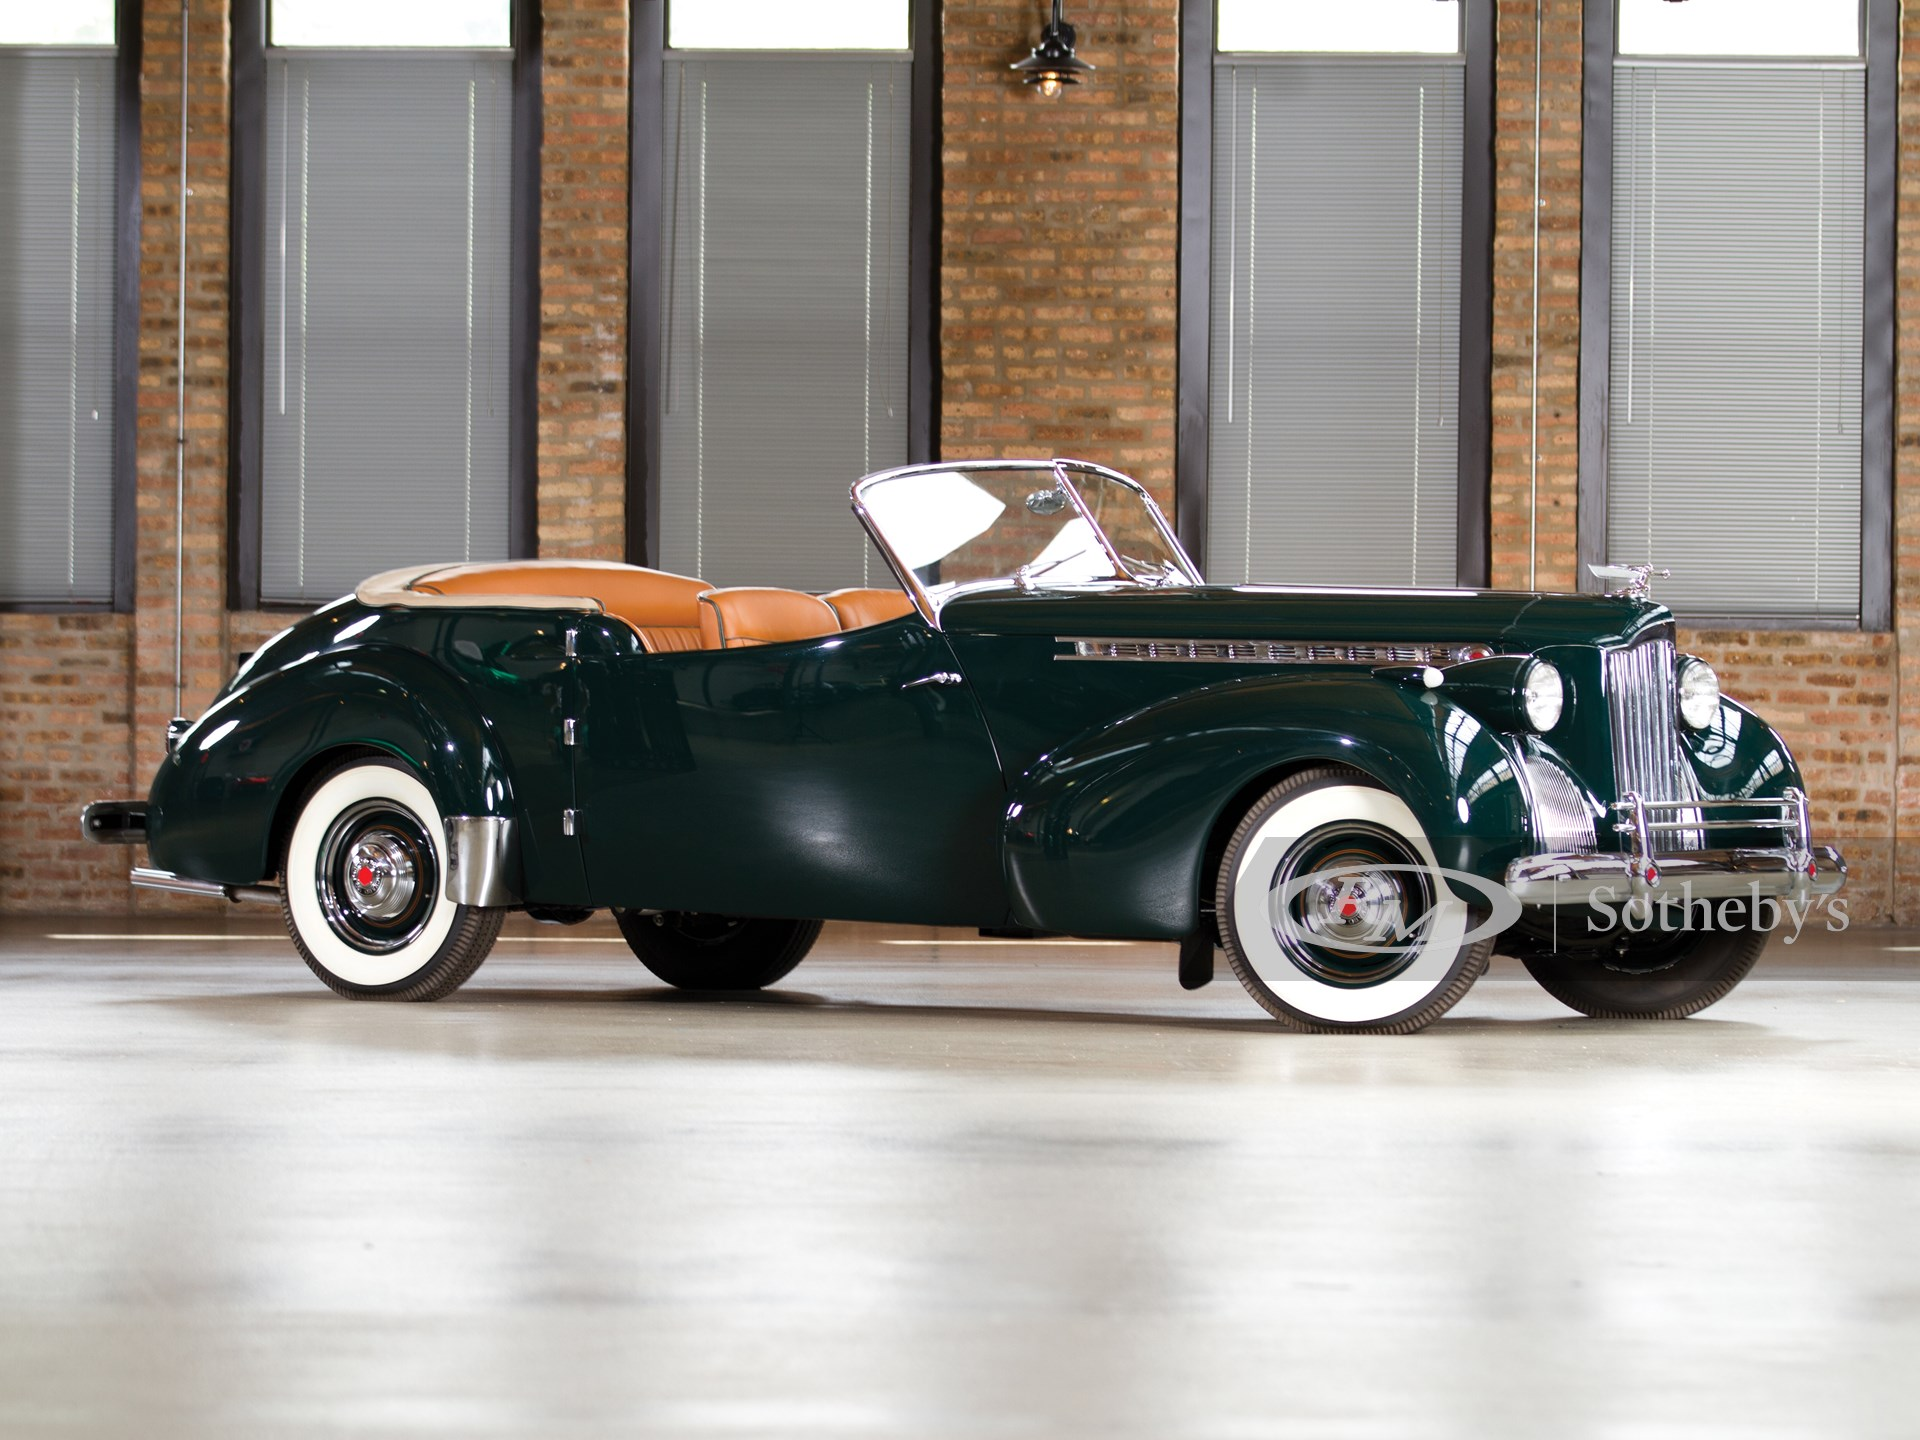 1940 Packard Super Eight One-Sixty Convertible Coupe by Rollson Inc.